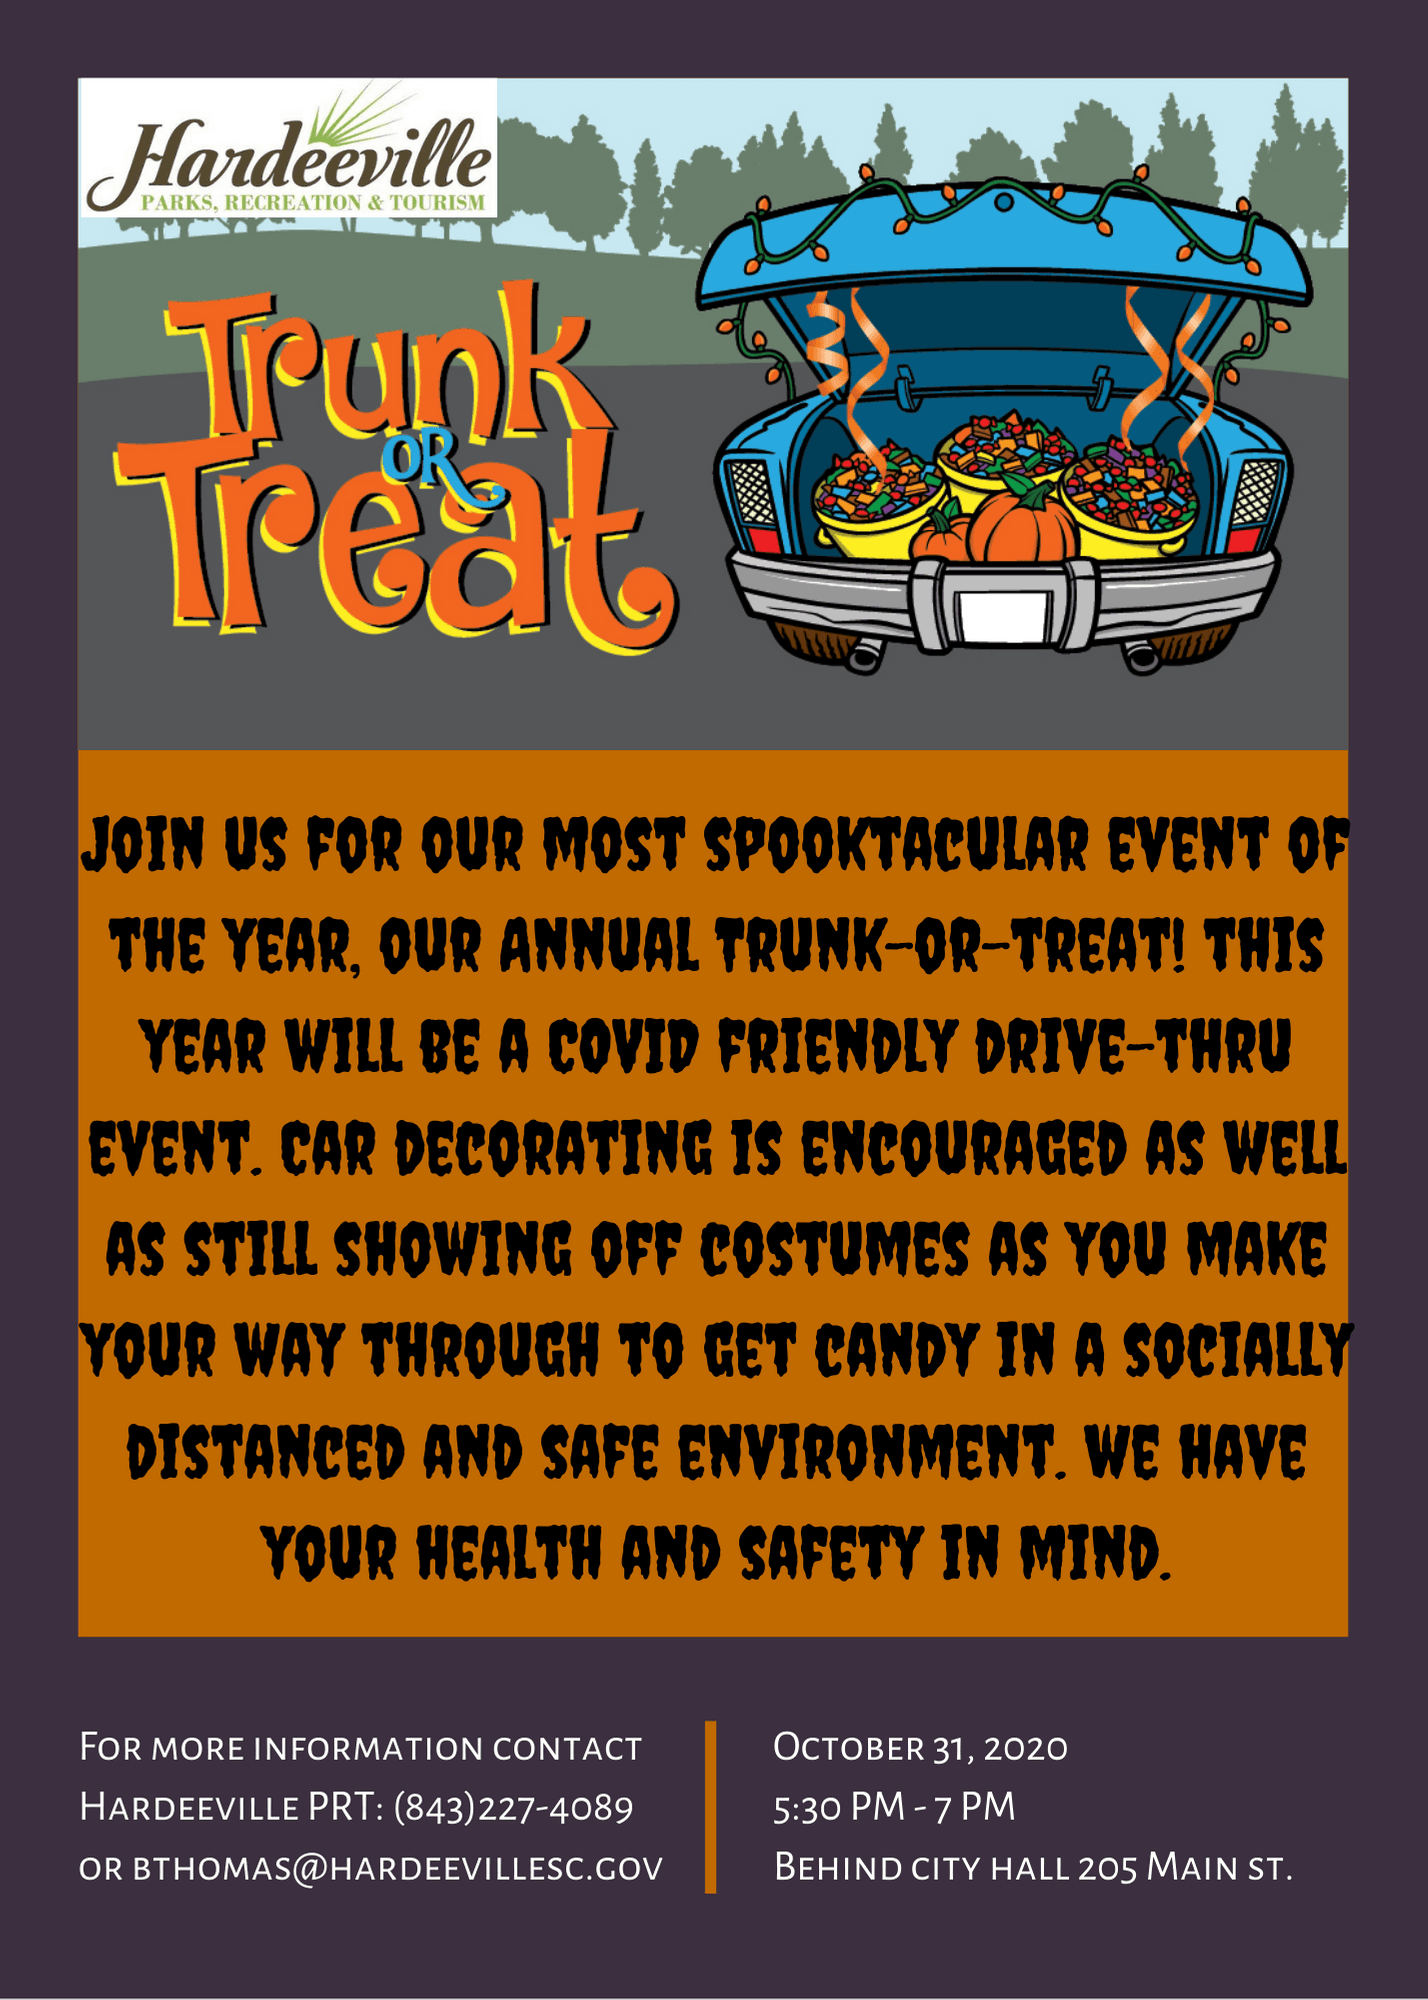 Drive-Thru Trunk-or-Treat is Saturday, October 31st from 5:30 PM to 7 PM